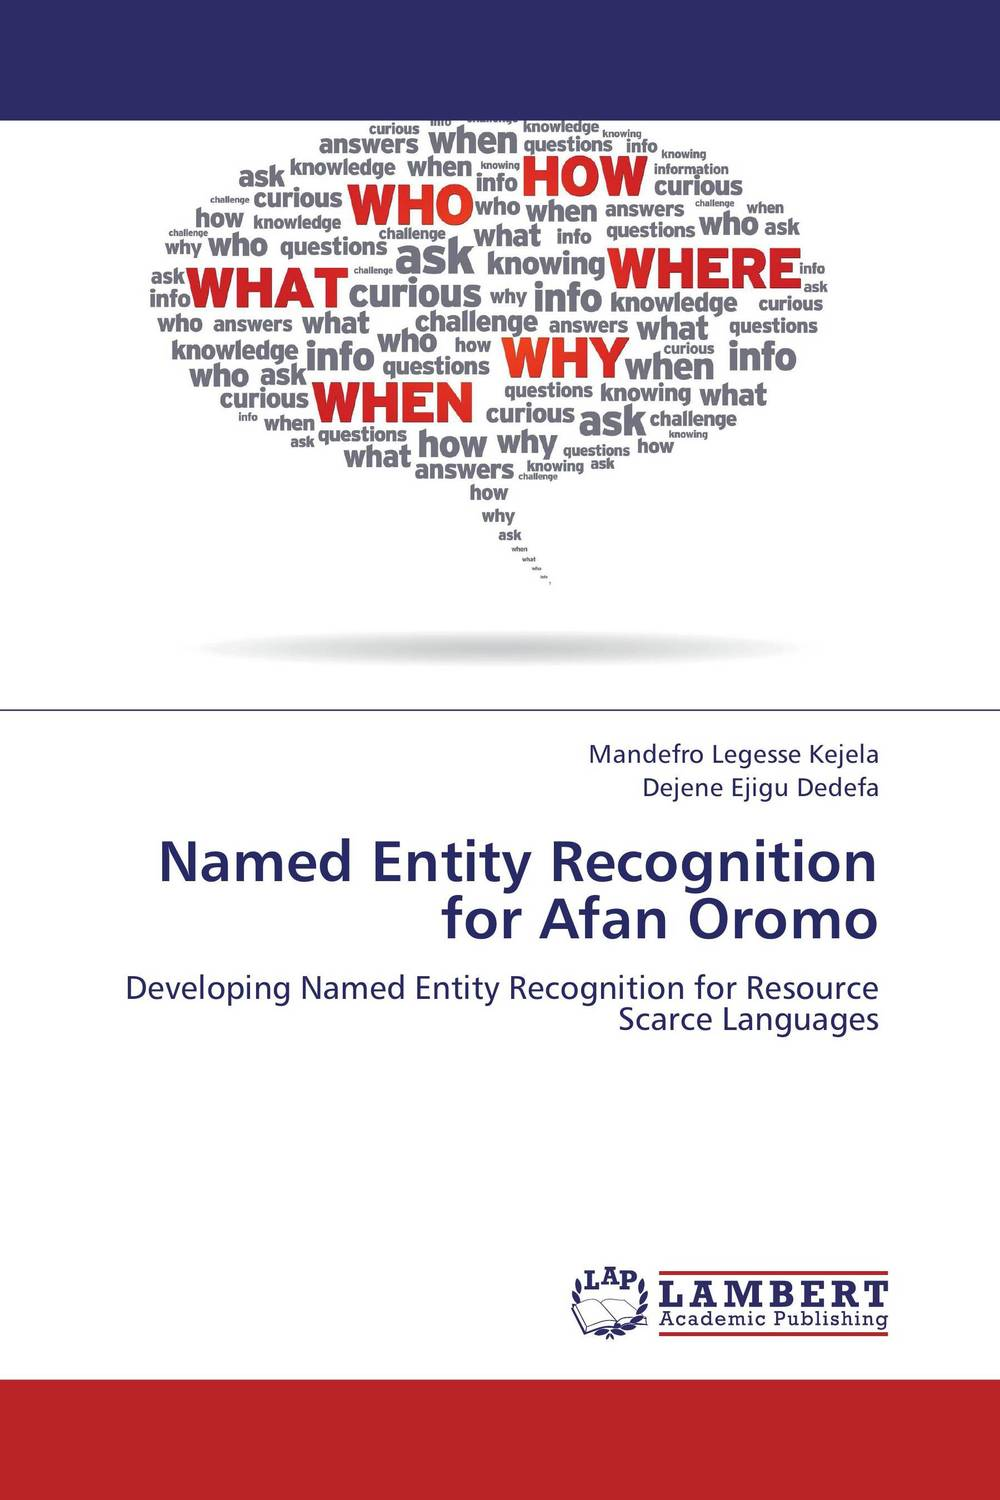 Named Entity Recognition for Afan Oromo information searching and retrieval